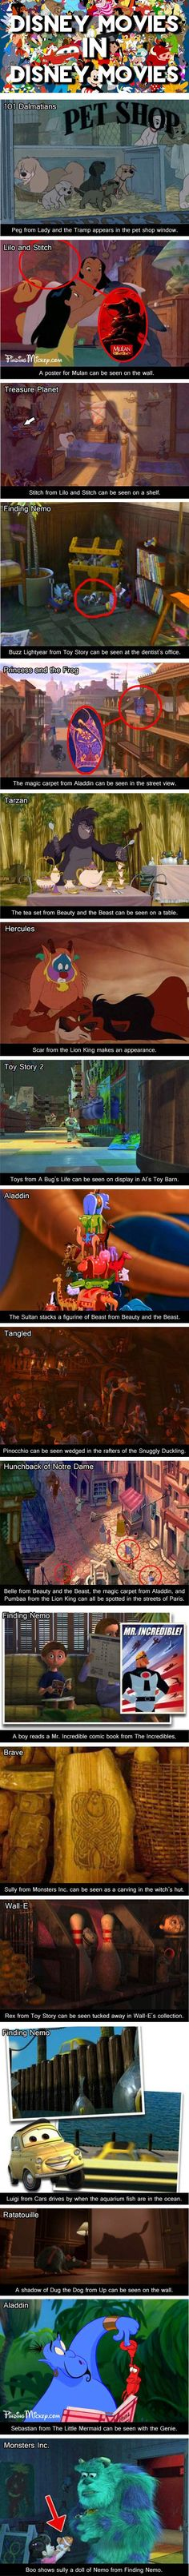 Disney Movies Inside Other Disney Movies…I knew it!!!!! I knew I wasn't crazy...I've seen most of these while watching those movies, always wondered.